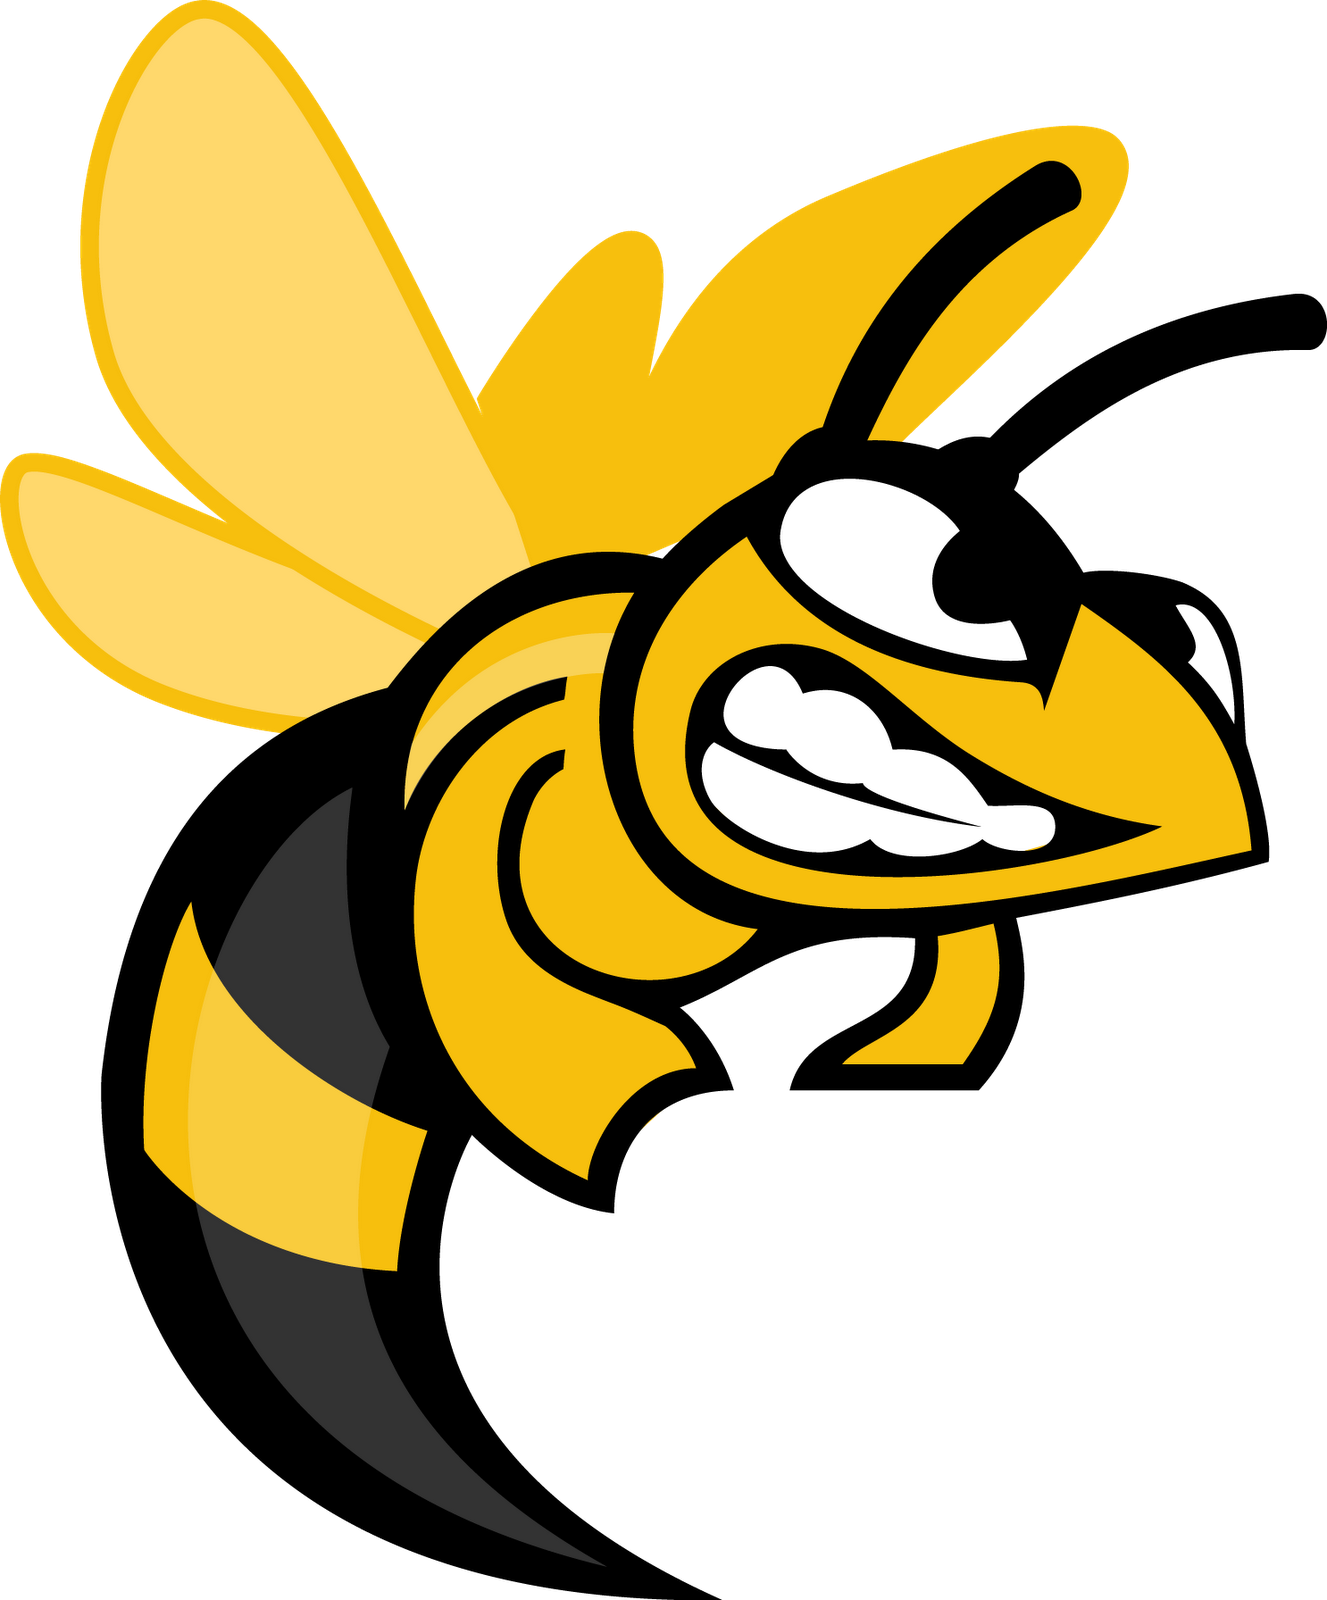 yellow hornets logo - photo #9